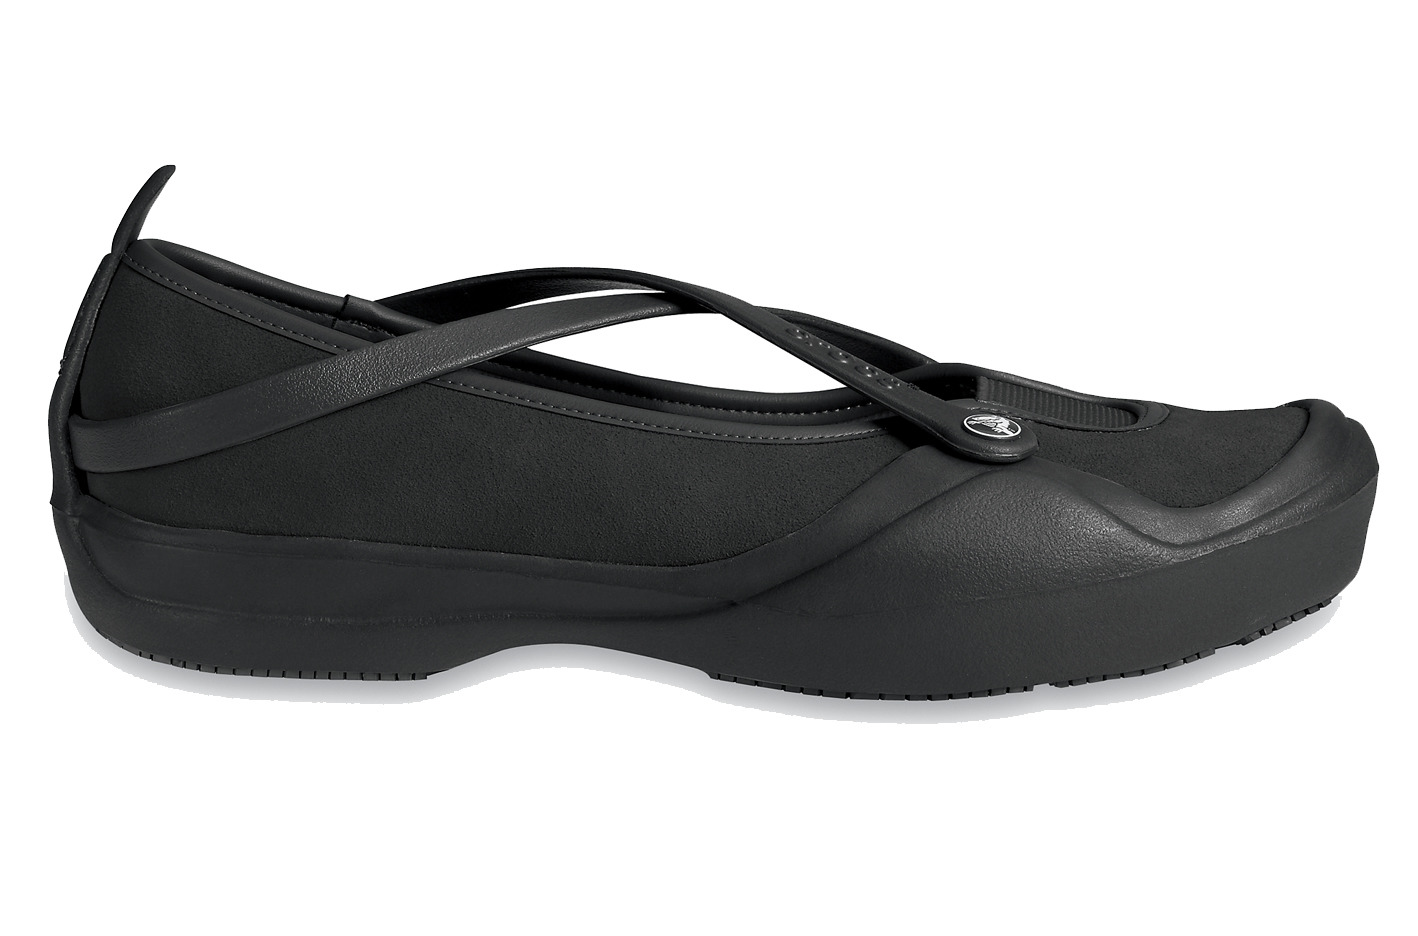 damen crocs schuhe flip flops celeste suede 10064 black. Black Bedroom Furniture Sets. Home Design Ideas